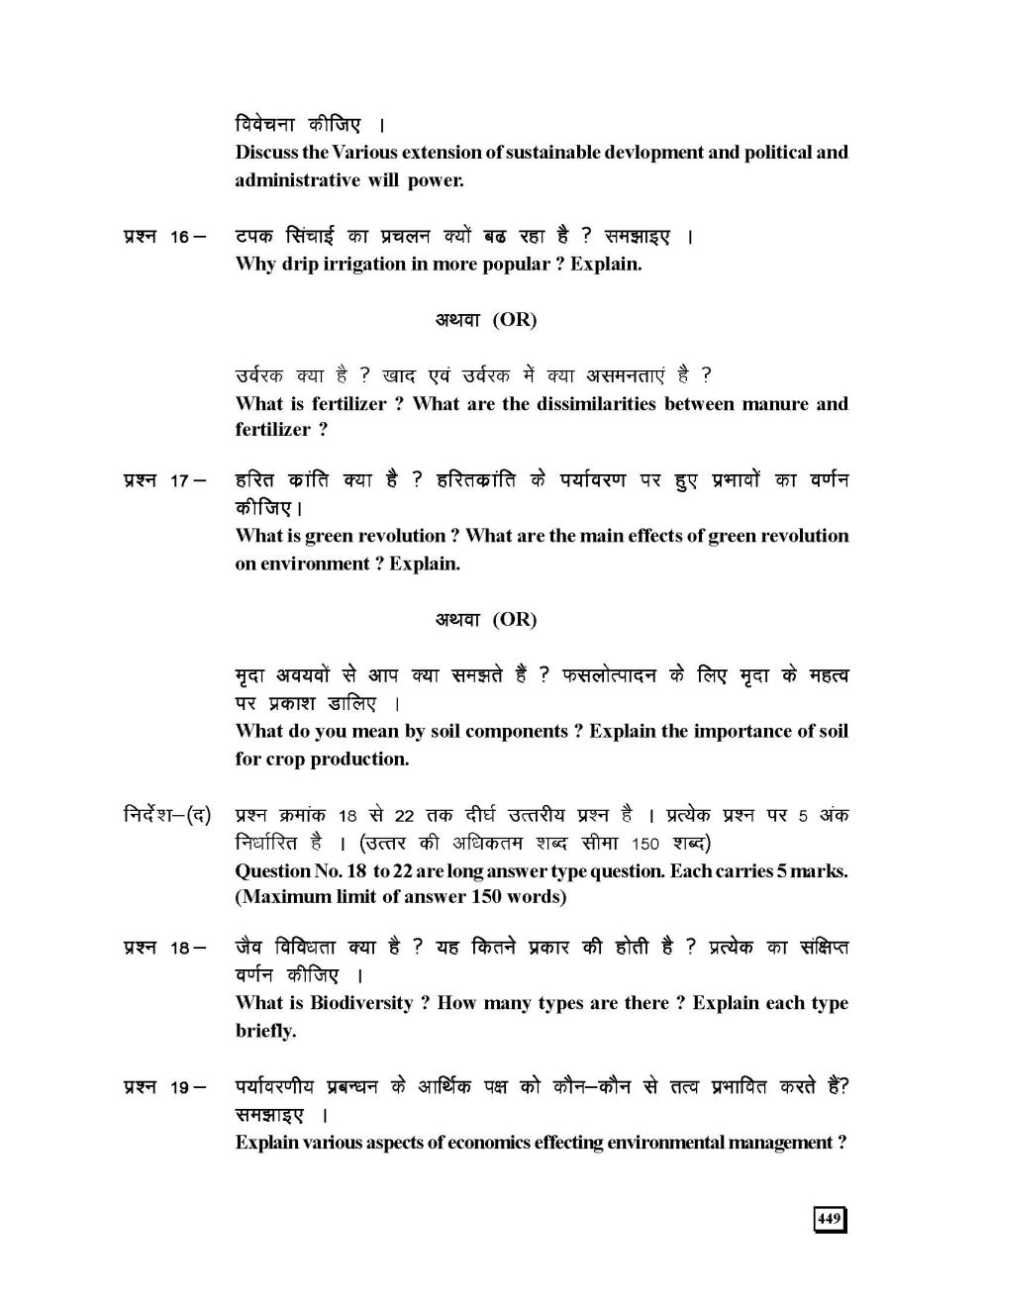 Chhattisgarh Board previous years question papers of Class 12